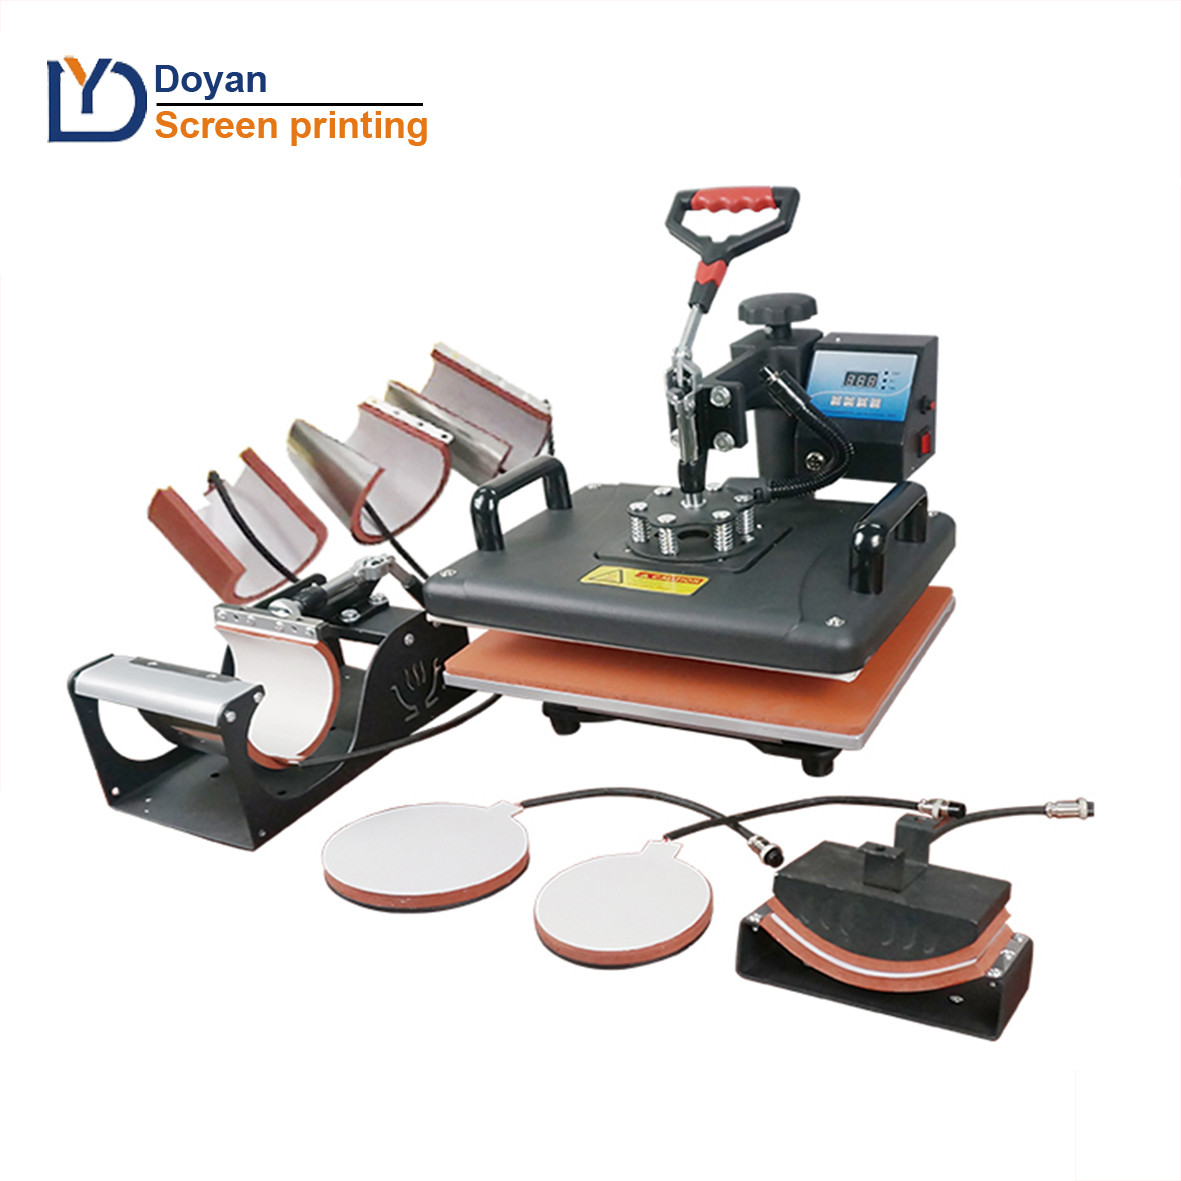 8 in 1 multifunction heat press machine